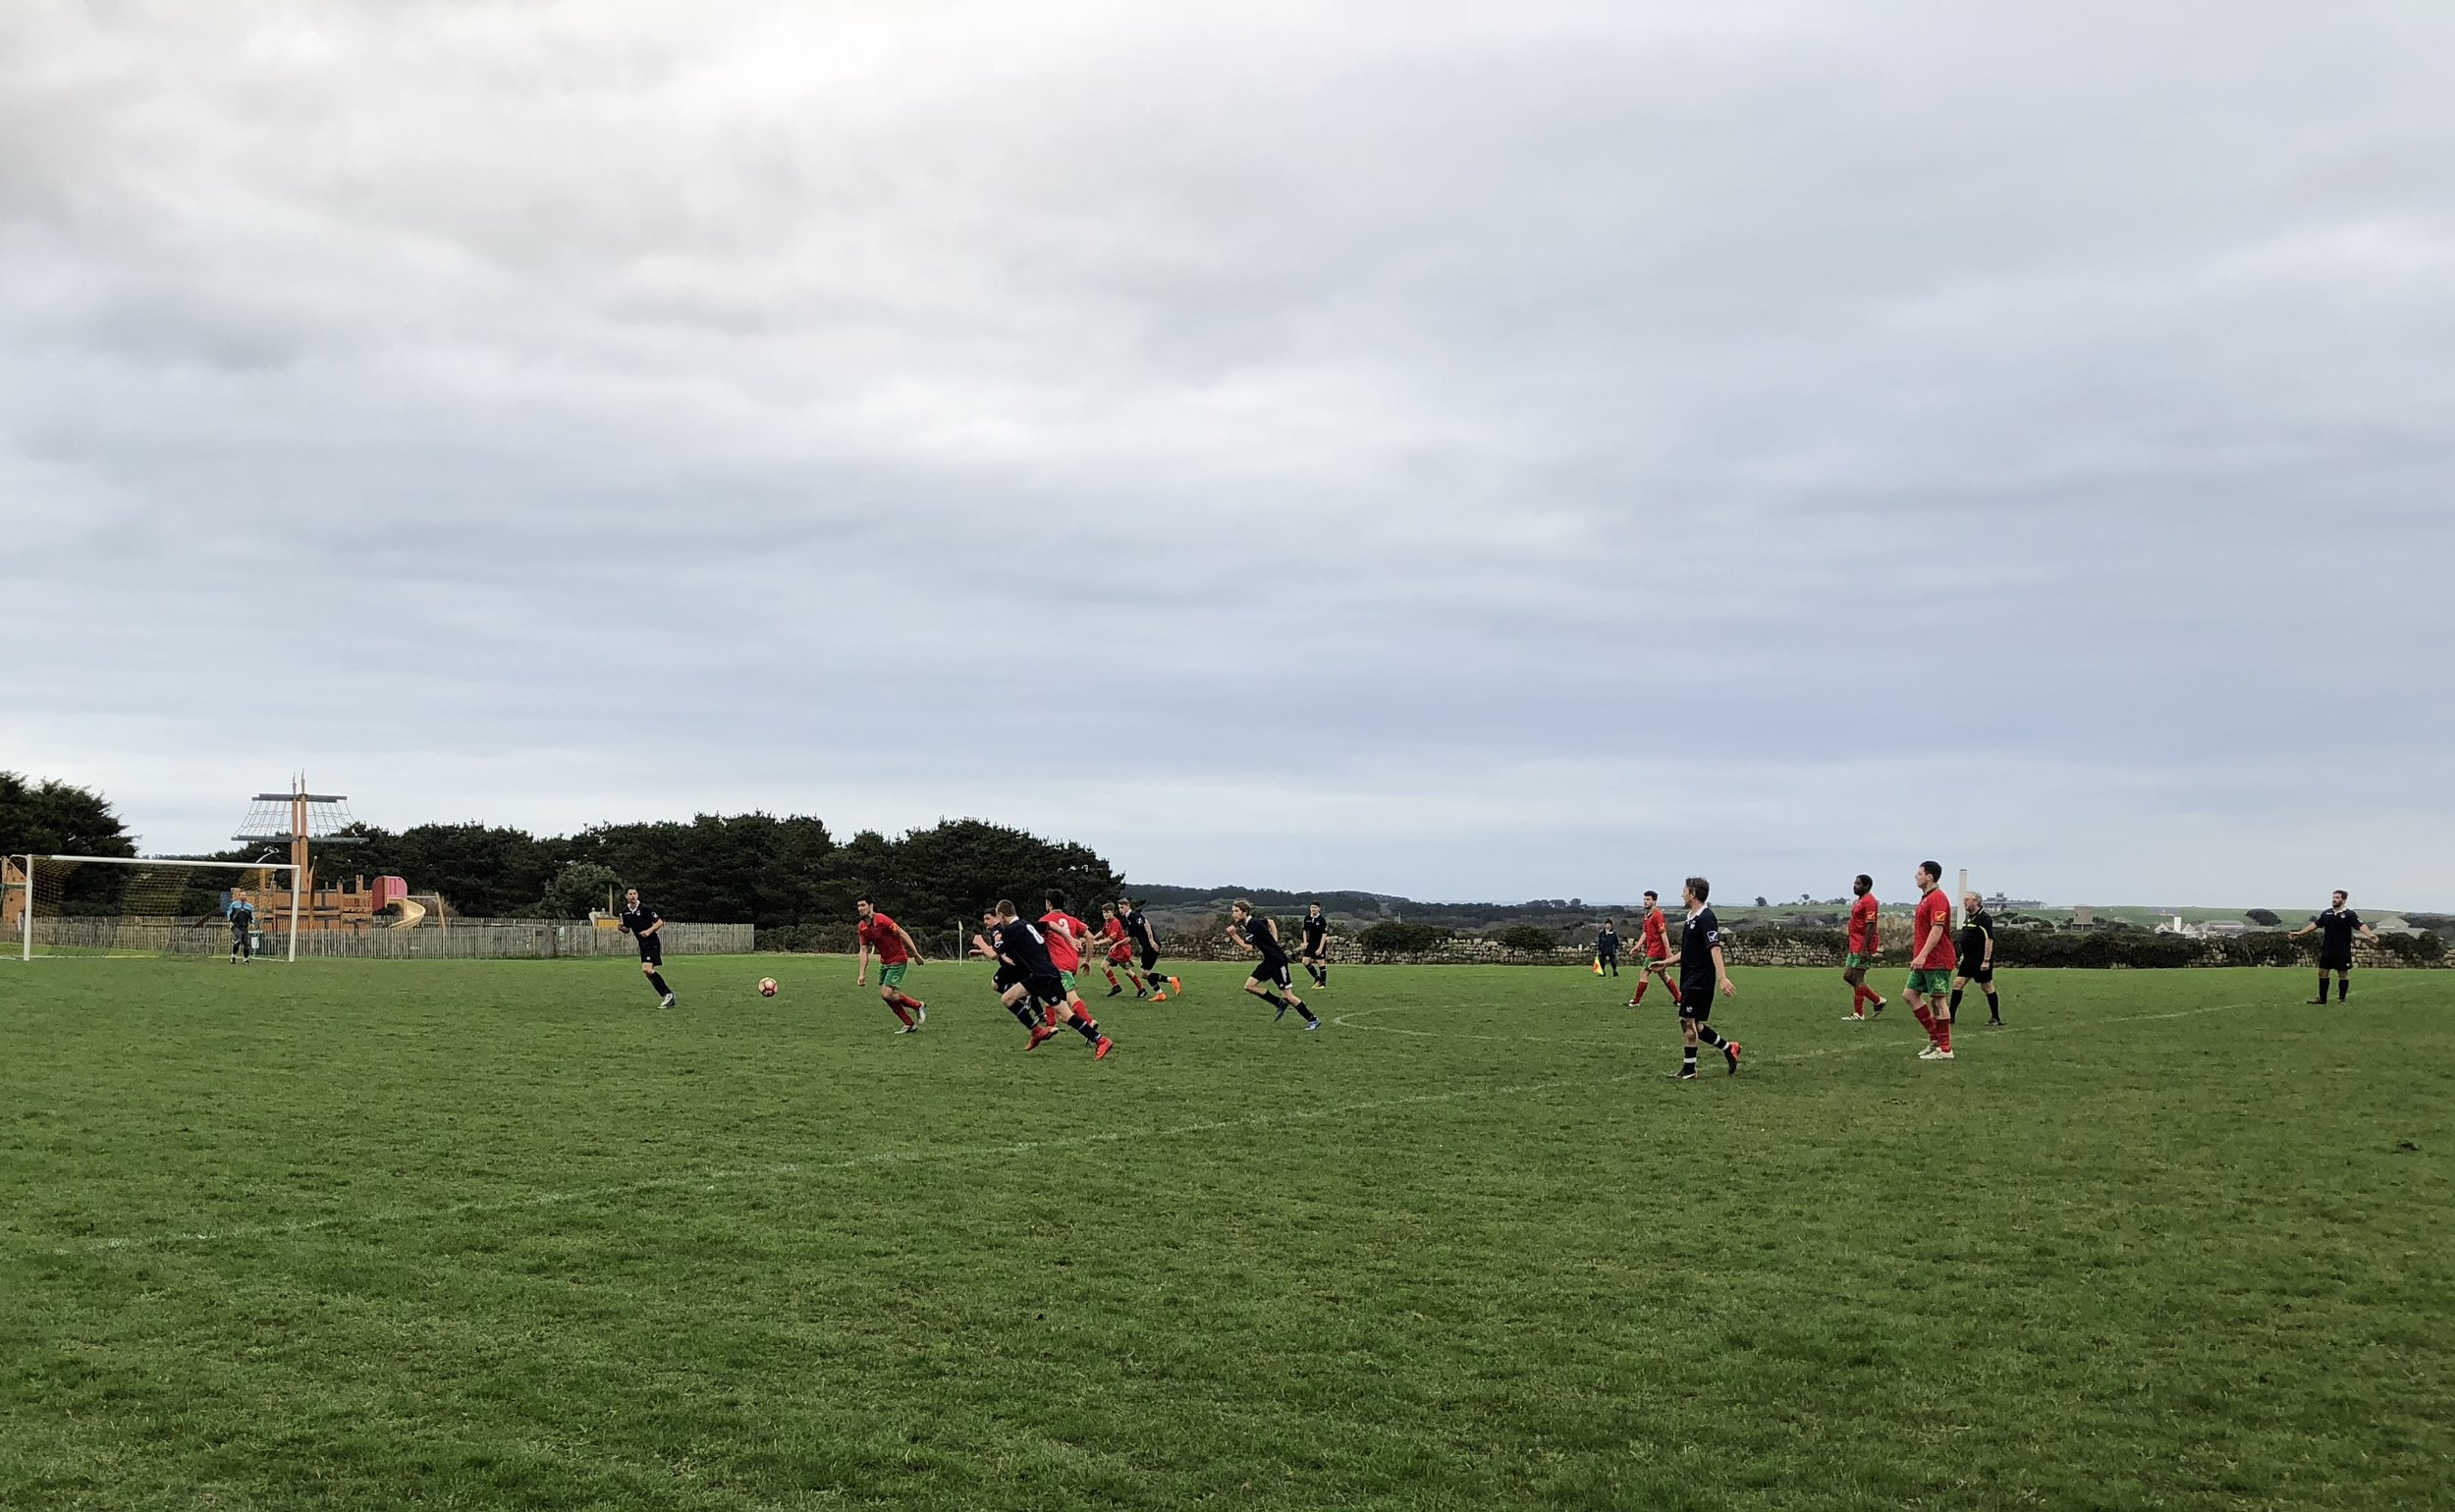 All 5 goals came in the second half, which the Wanderers dominated. They did have an extra man for the majority of the game, which proved to be the real difference.